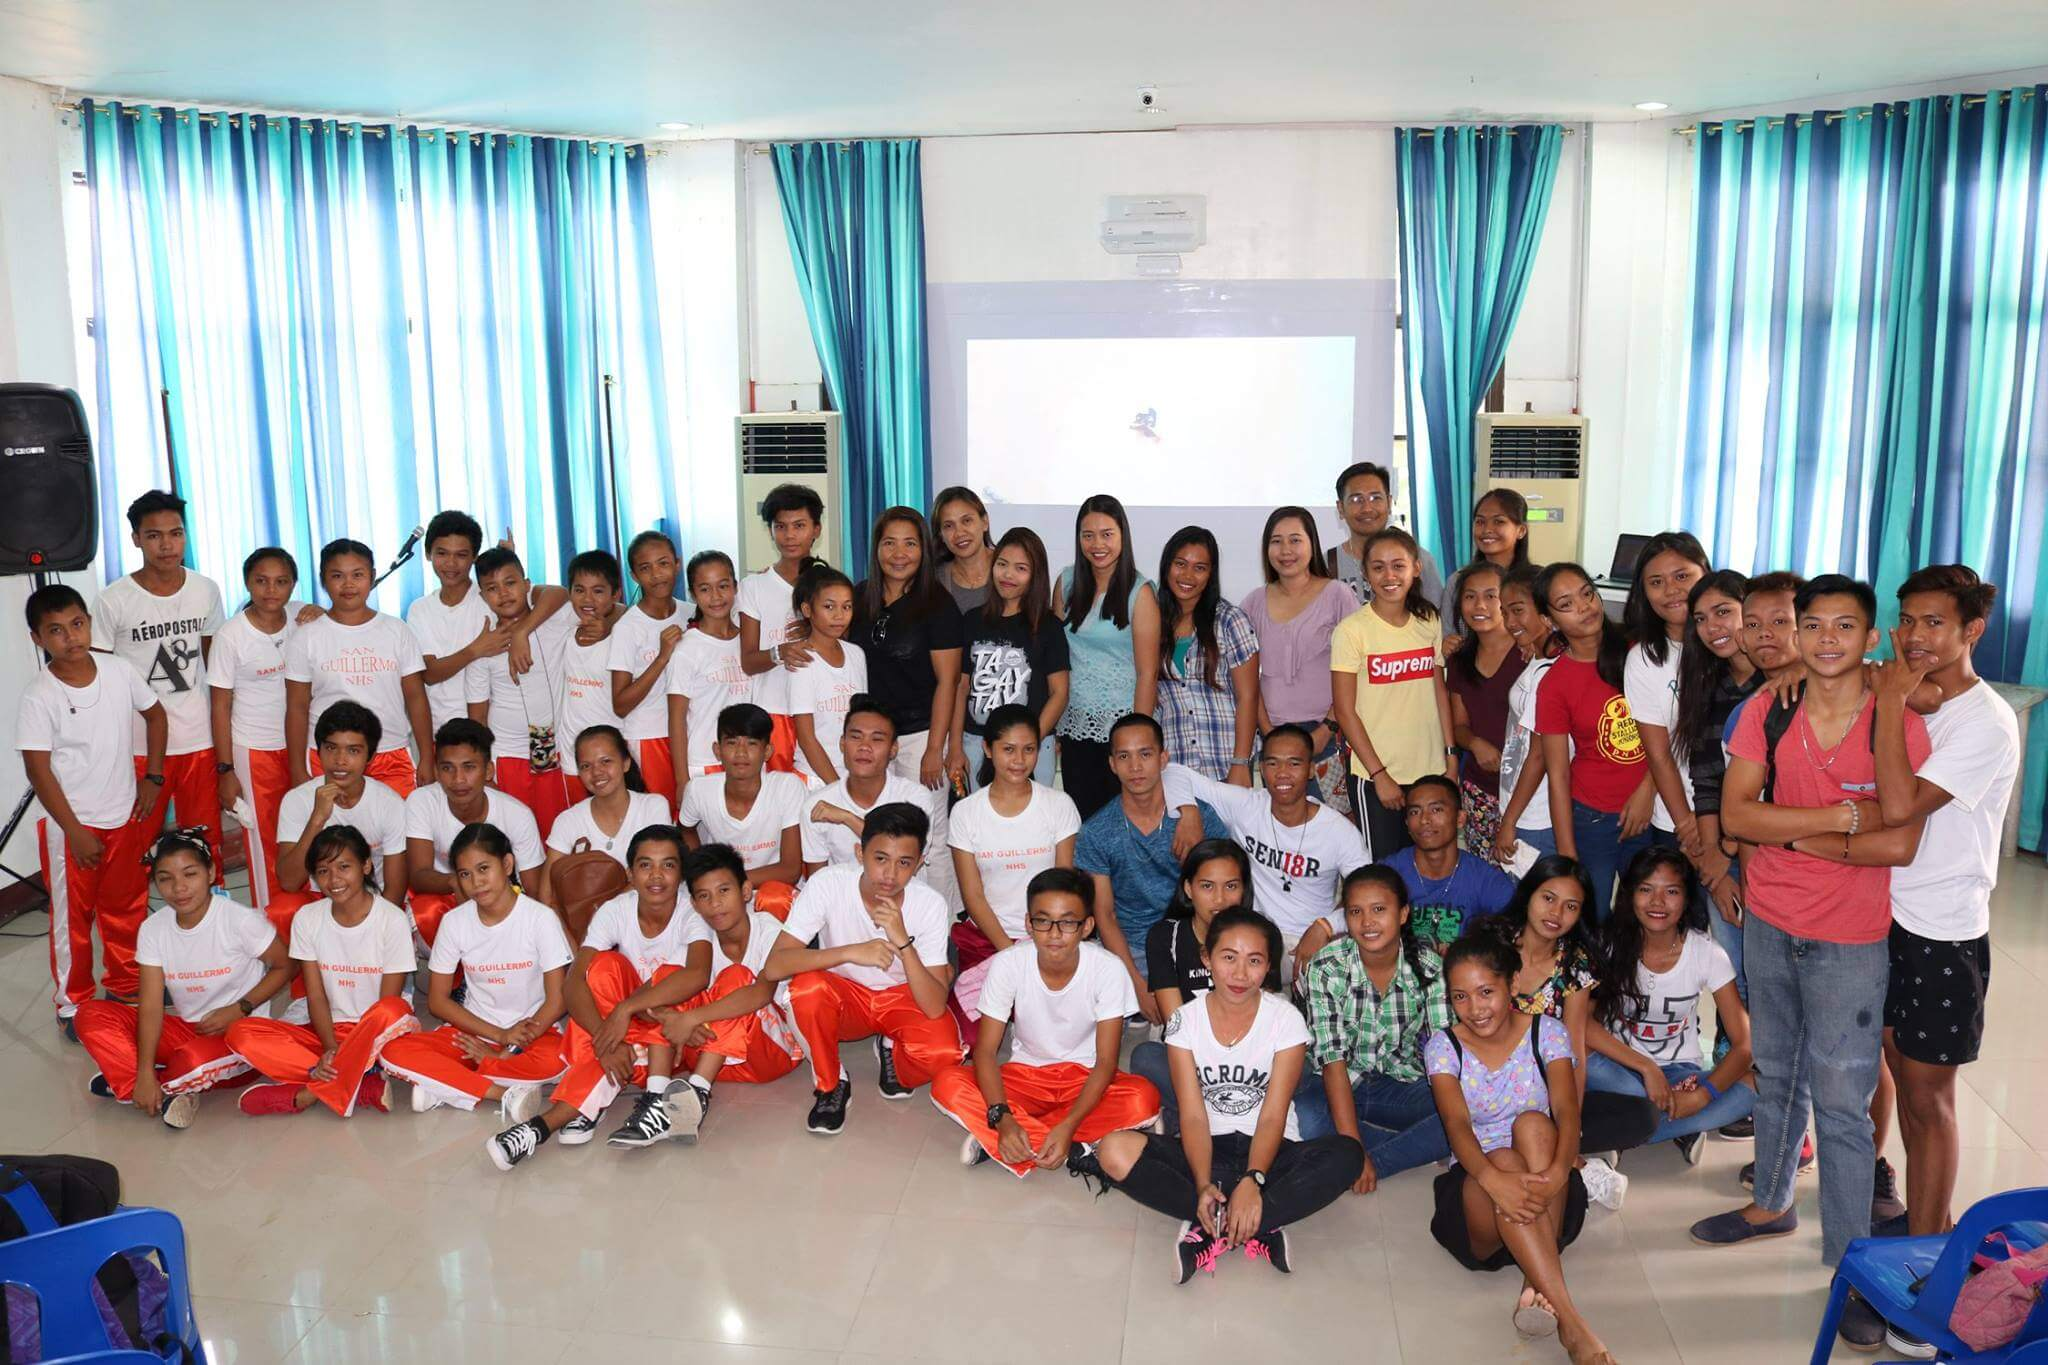 Module-07 & 10 – Modular Course High School Students On DRRM – Palompon National High School & San Guellermo NHS. 3rd Set